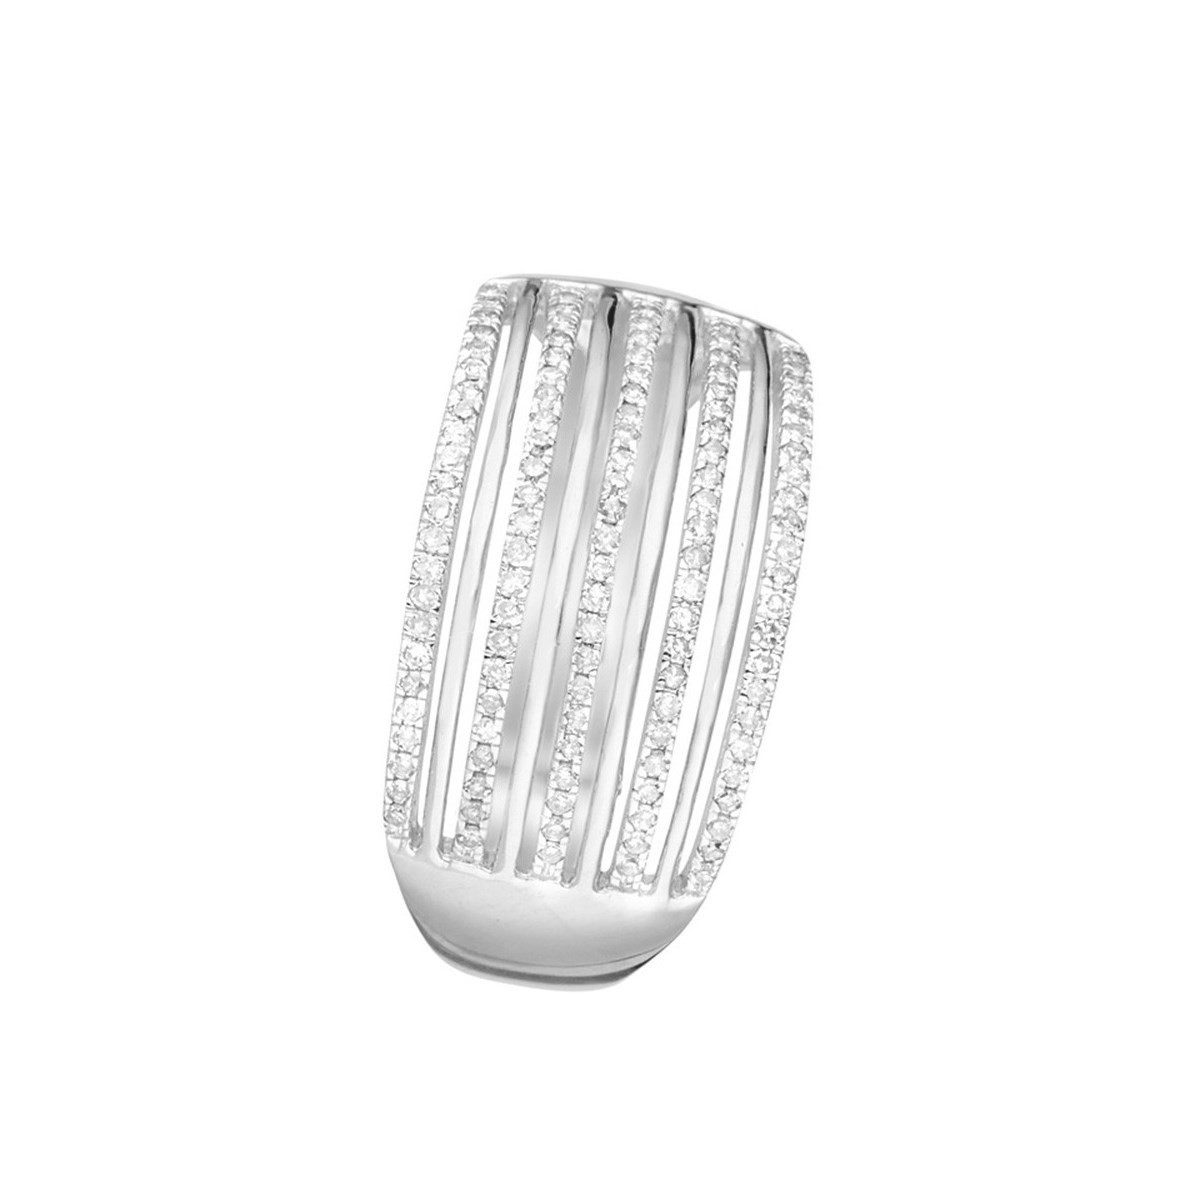 Bague Or Blanc et Diamants 0 -25 carats Kendall